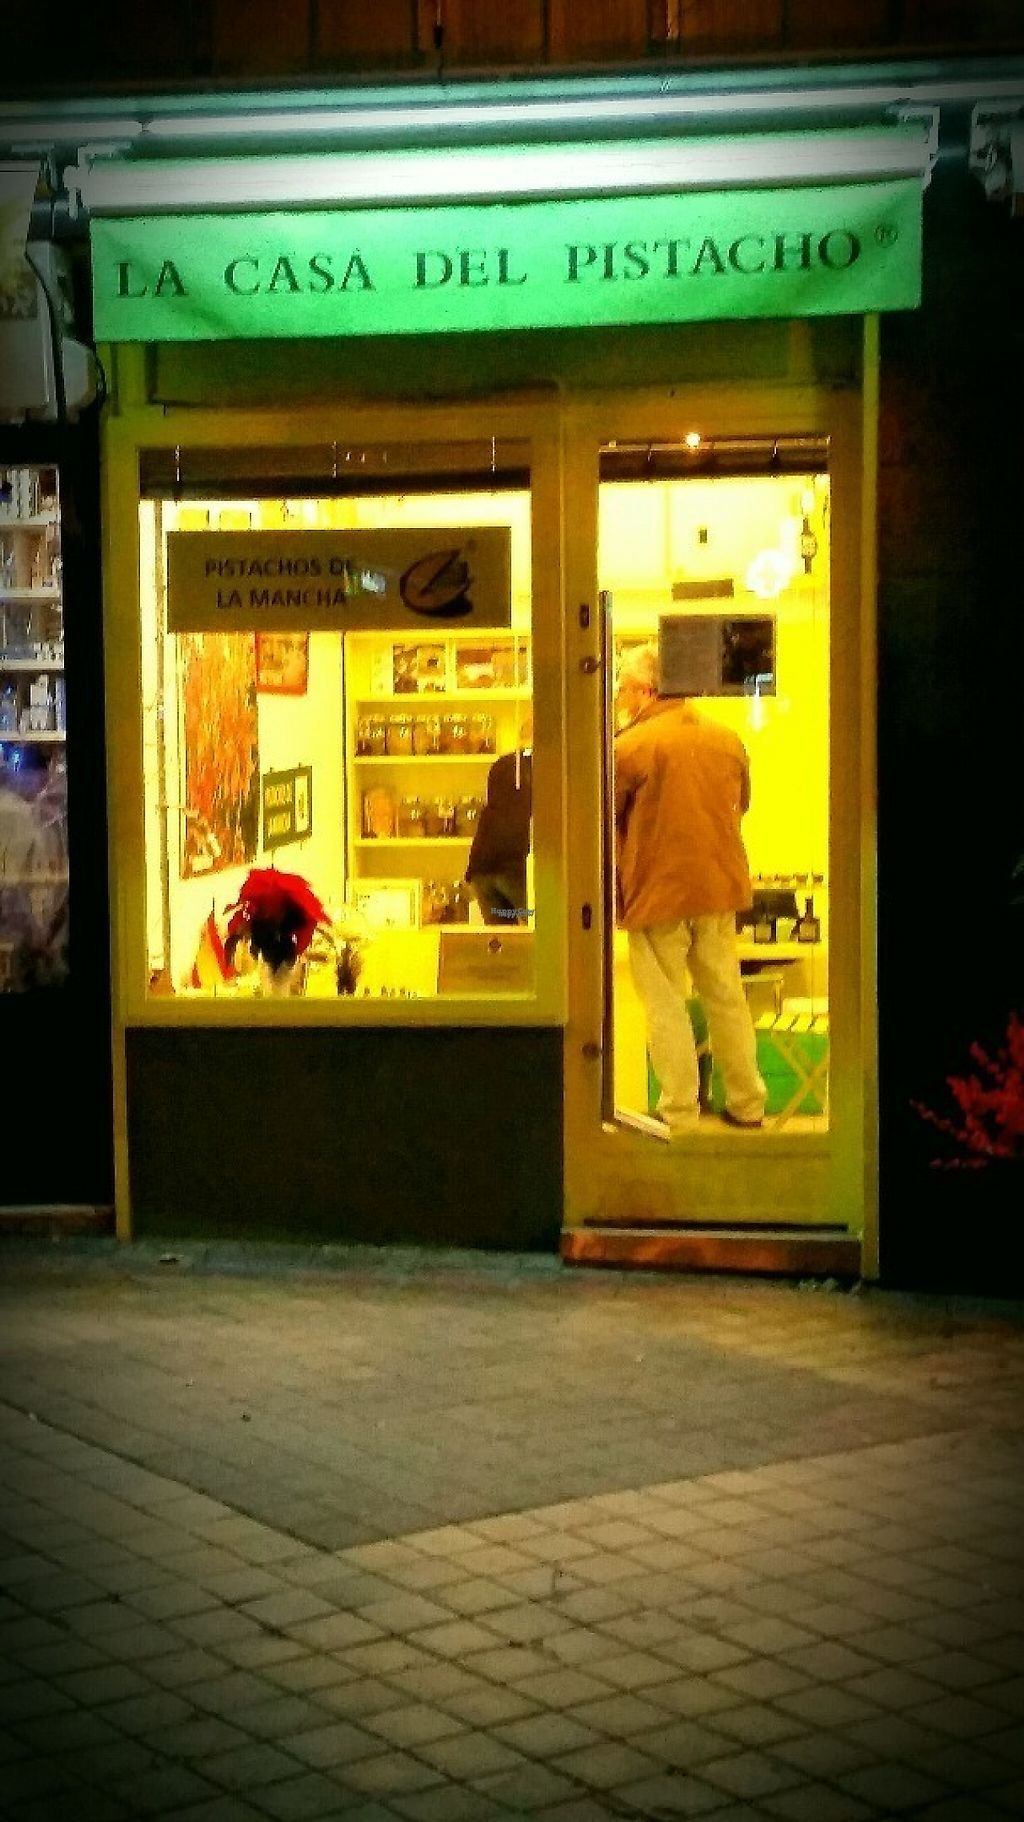 """Photo of La Casa del Pistacho  by <a href=""""/members/profile/MMCM"""">MMCM</a> <br/>View of the shop from Calle Potosi <br/> December 10, 2016  - <a href='/contact/abuse/image/82695/198878'>Report</a>"""